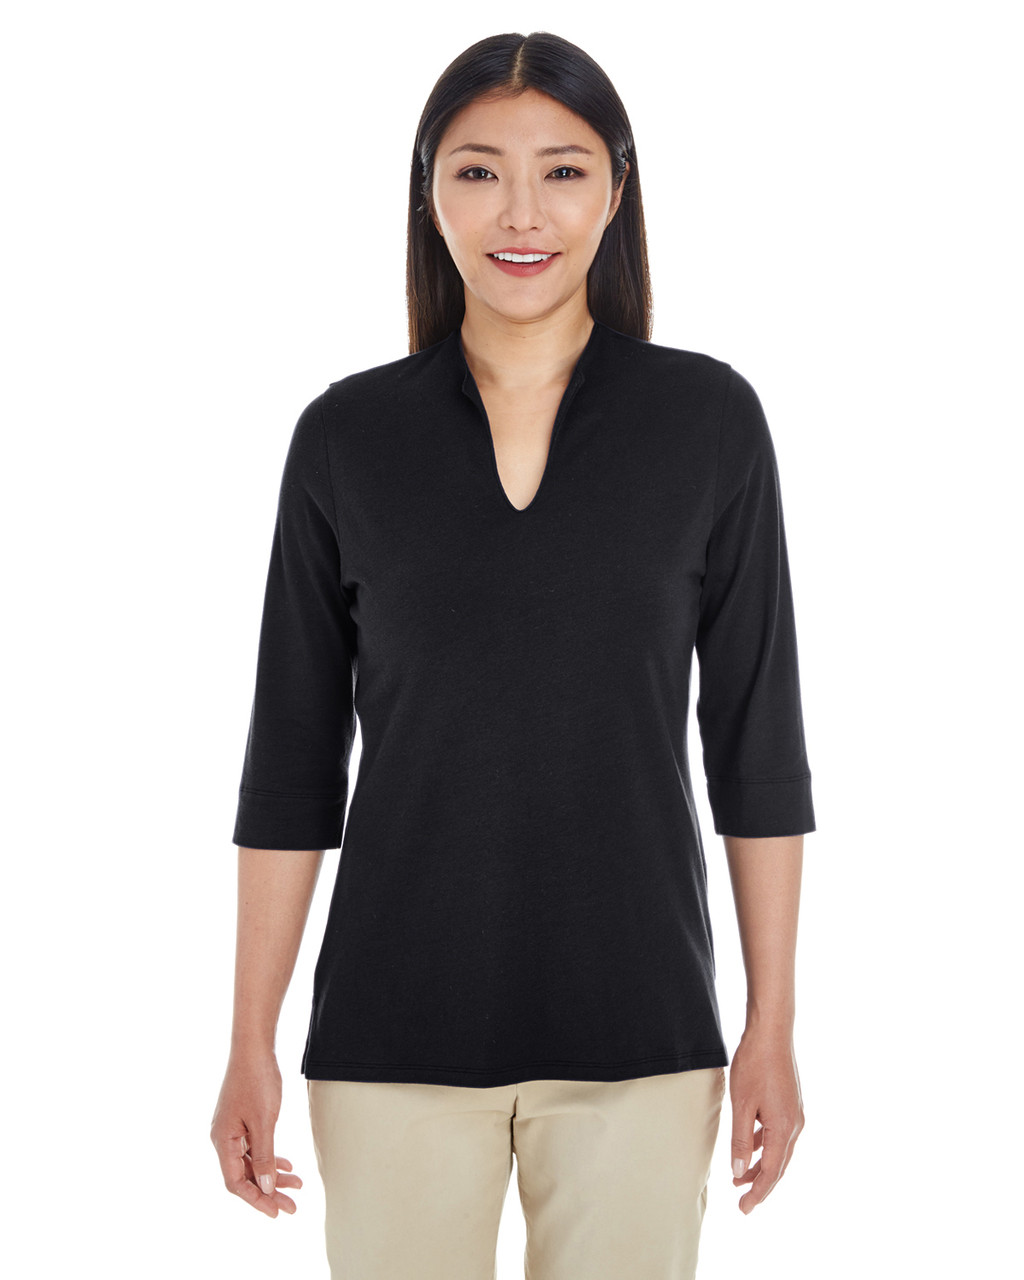 Black - DP188W Devon & Jones Ladies' Perfect Fit™ Tailored Open Neckline Top